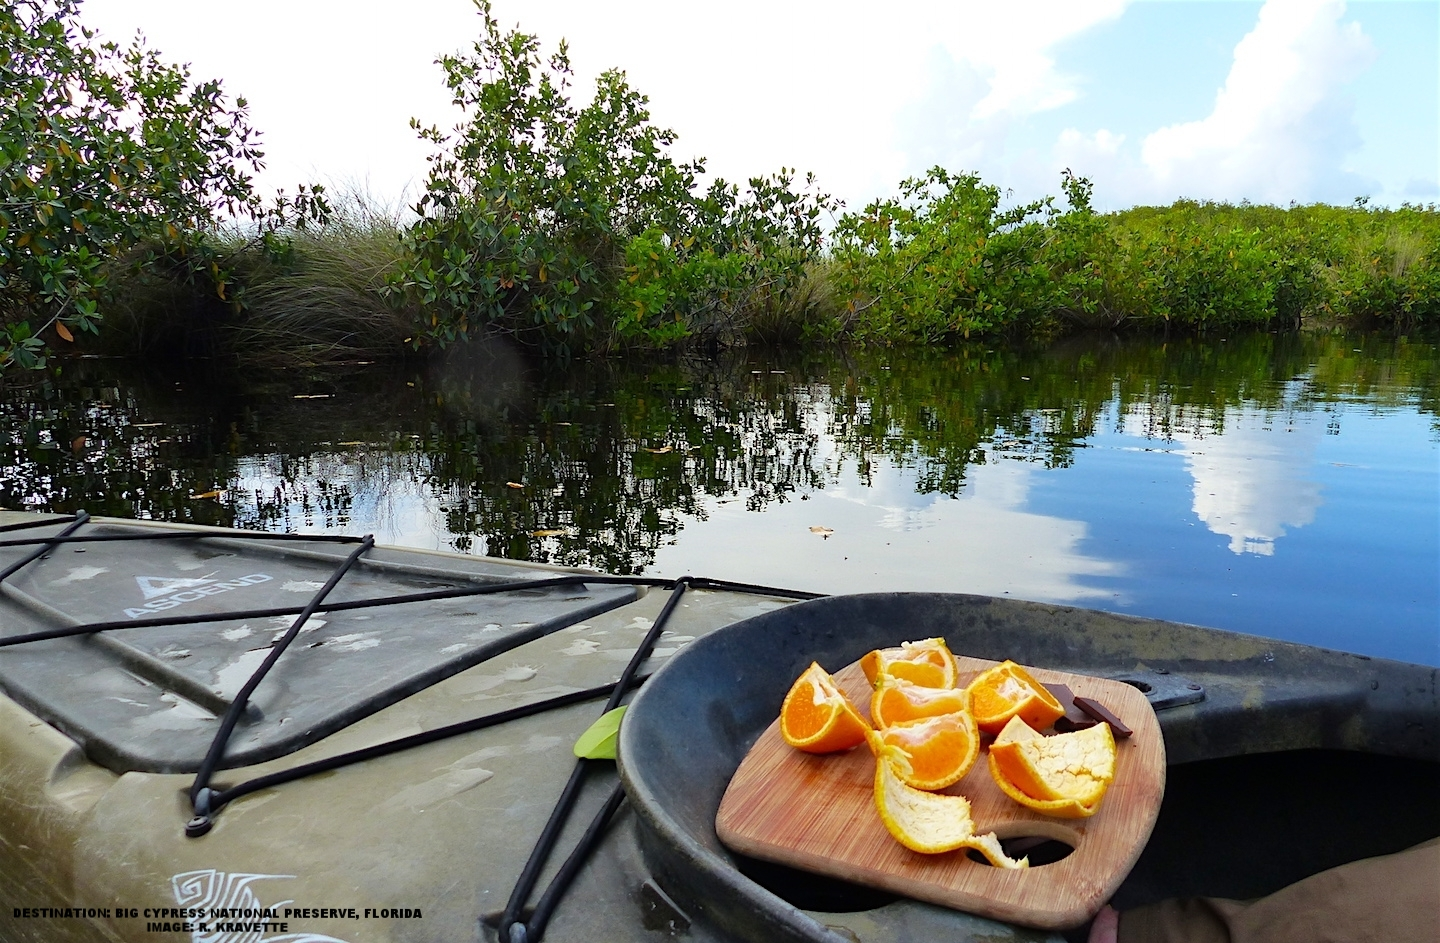 """OUR """"TOUR THE GLADES"""" KAYAK ADVENTURE INCLUDED THE SWEETEST ORANGES AND MOST DELICIOUS CHOCOLATE EVER. IMAGE: R. KRAVETTE"""